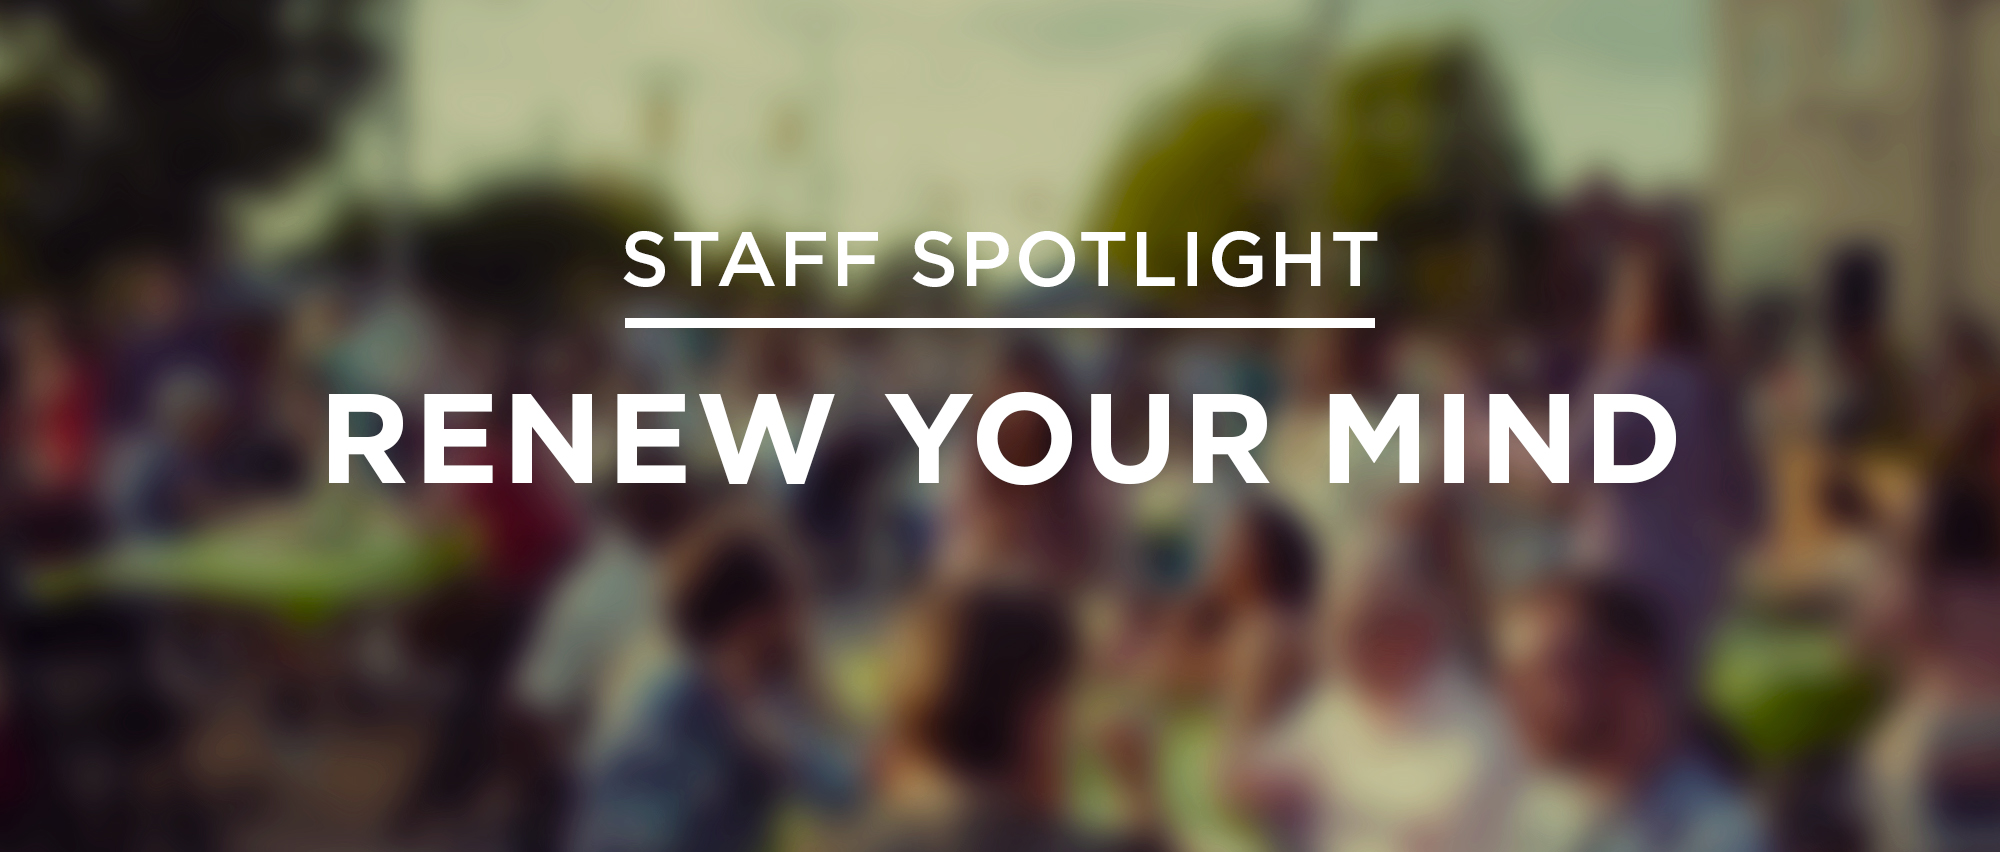 staff-spotlight-renew-your-mind.jpg